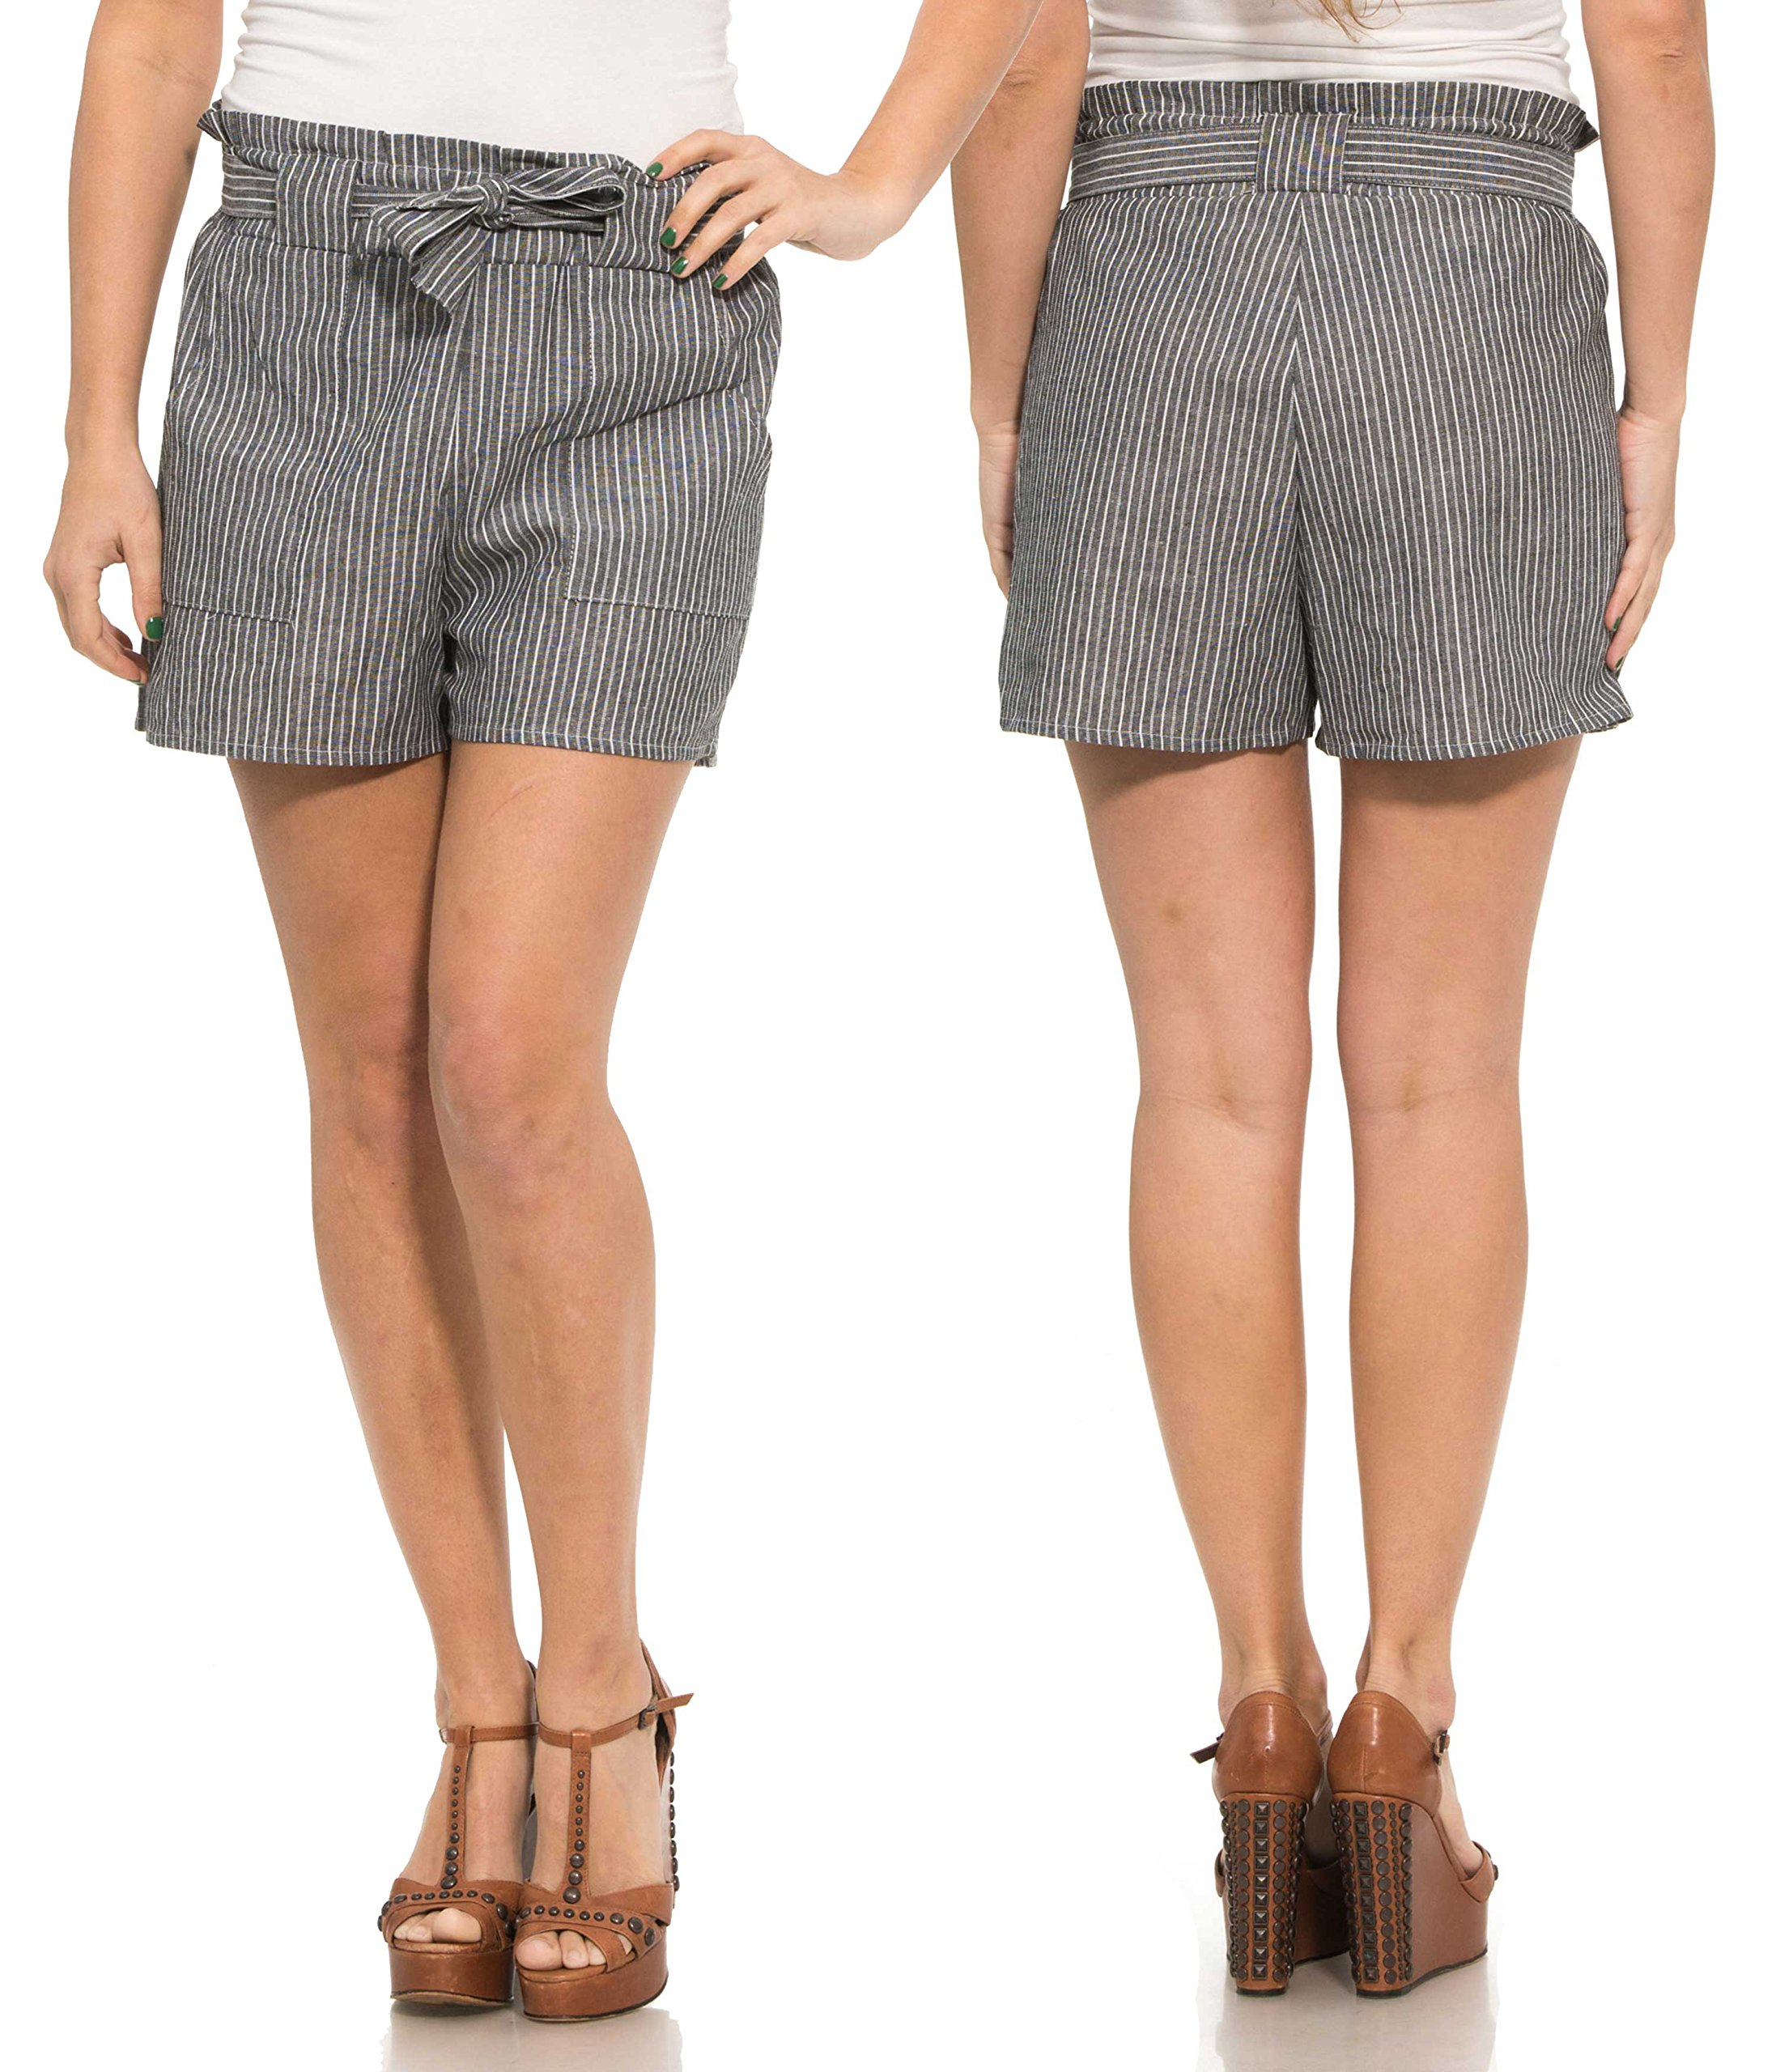 Maze Collection Ladies Tie-On Belted High Waist Striped Shorts with Side Pockets (Large, Black)